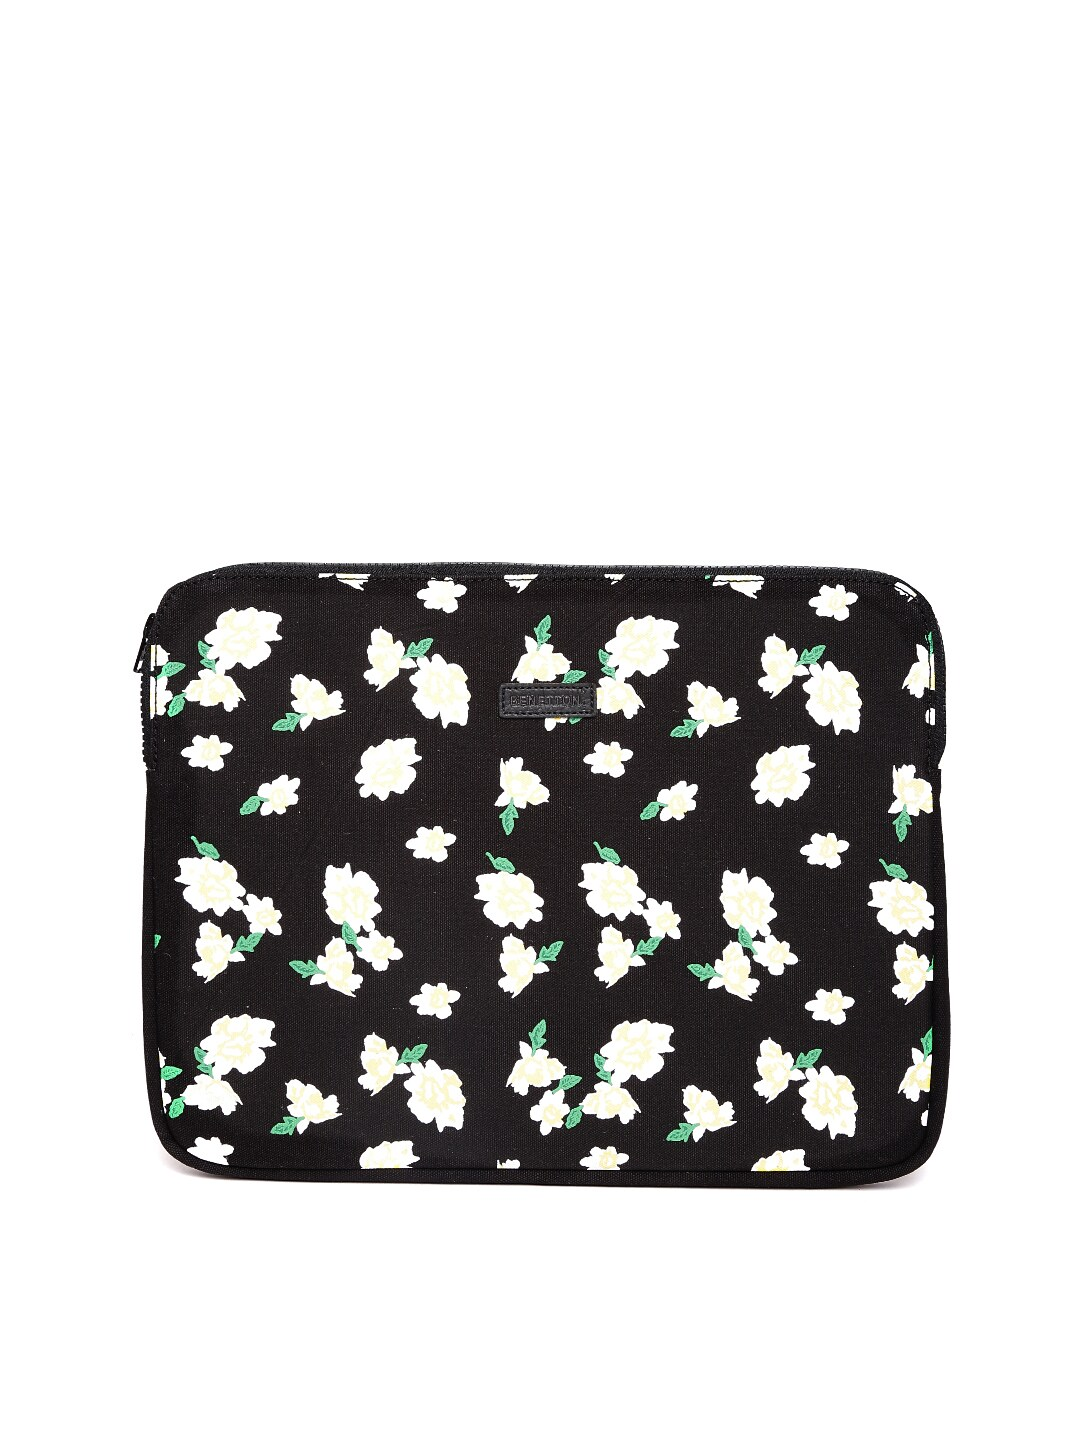 United Colors of Benetton Women Black Floral Print Laptop Sleeve